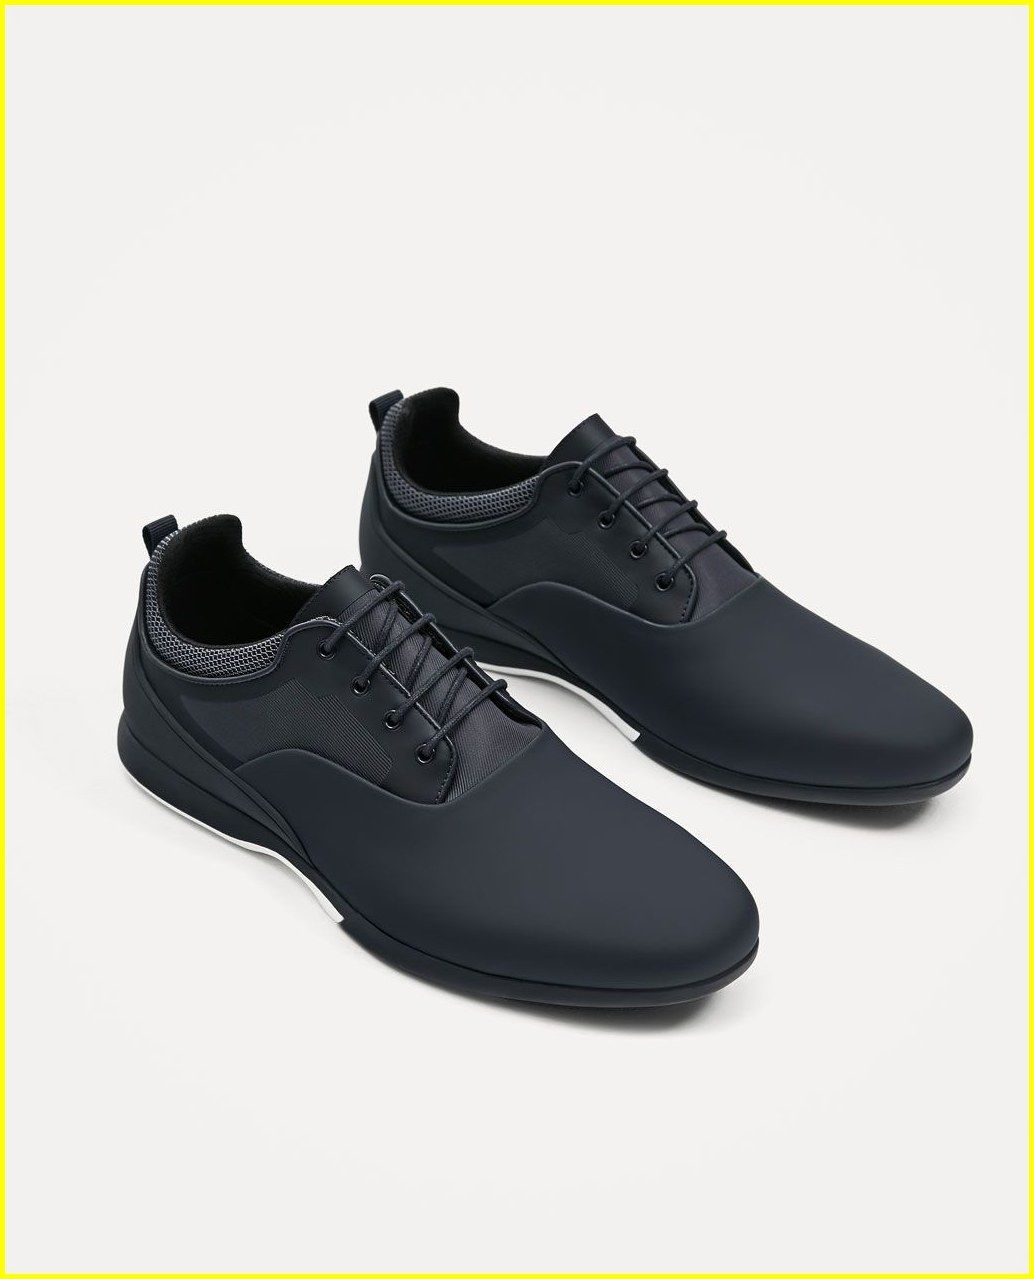 separation shoes c11c8 6827e Men s sneakers. Looking for more info on sneakers  Then simply just click  here to get further information. Related details. Mensxp Sneakers